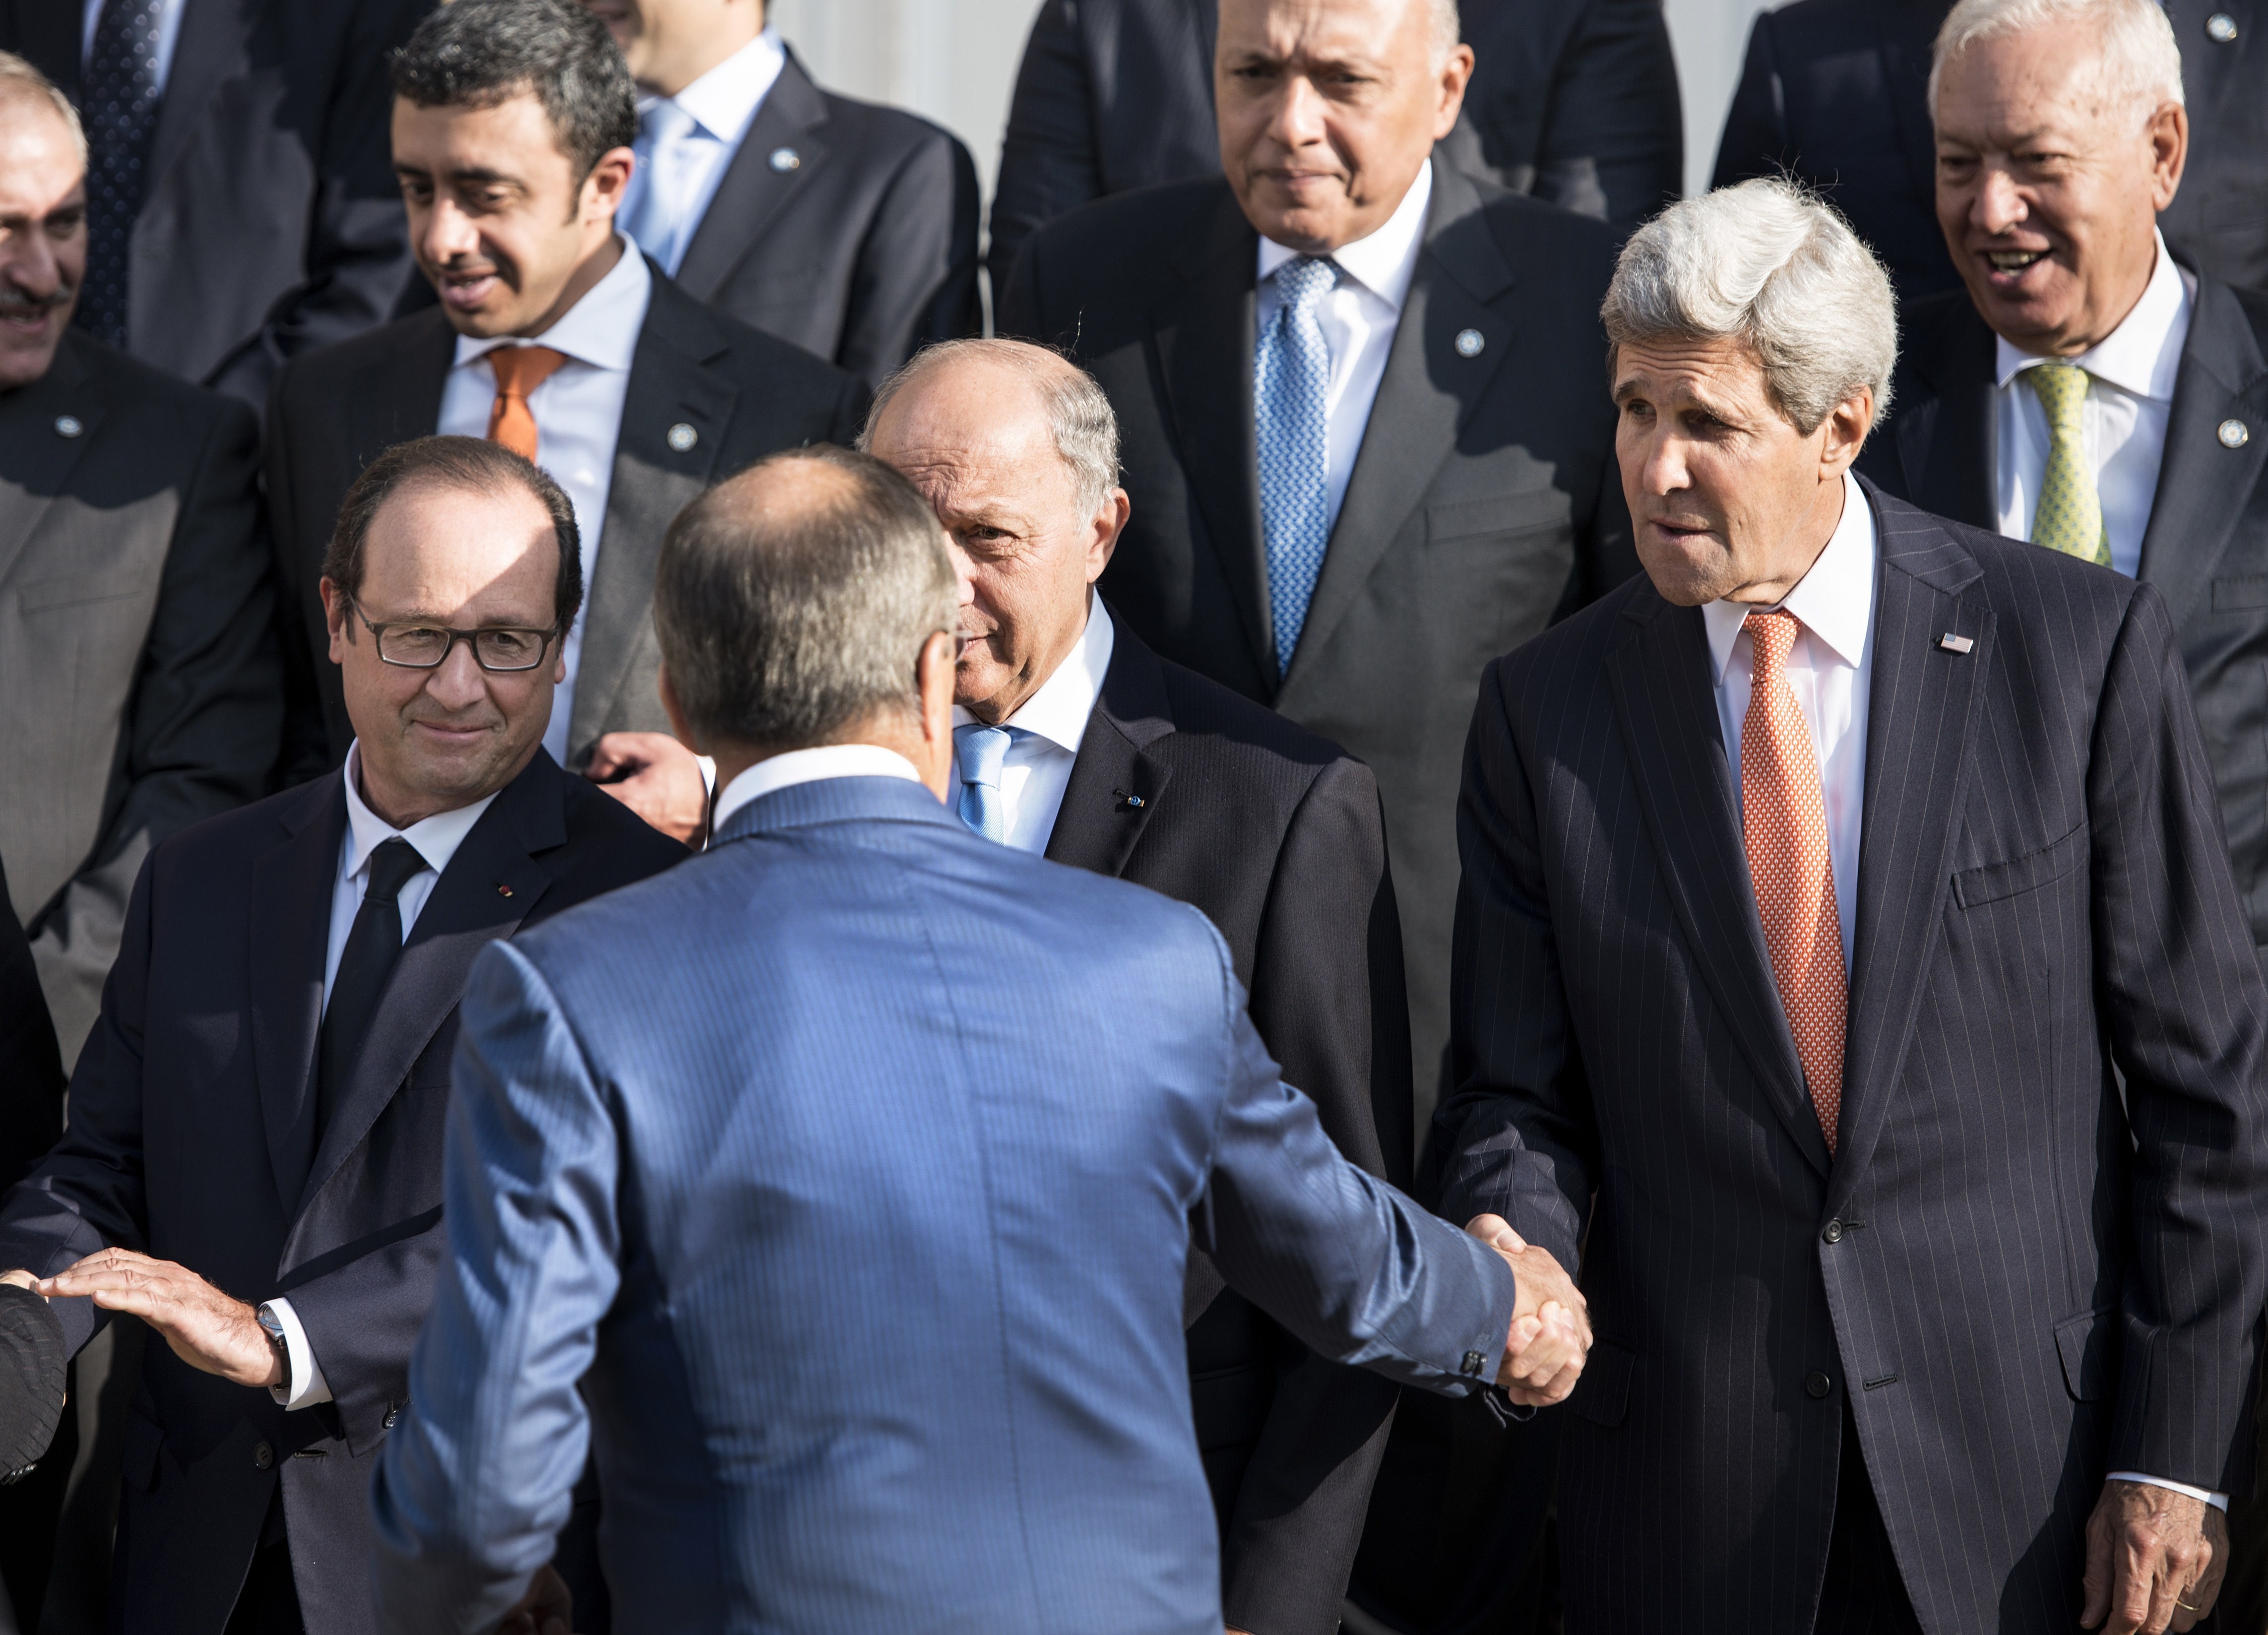 US Secretary of State John Kerry (R) shakes hands with Russian Foreign Minister  Sergey Lavrov (2ndL) as French President Francois Hollande (L) and others look on, September 15, 2014 in Paris. (BRENDAN SMIALOWSKI/AFP/Getty Images)